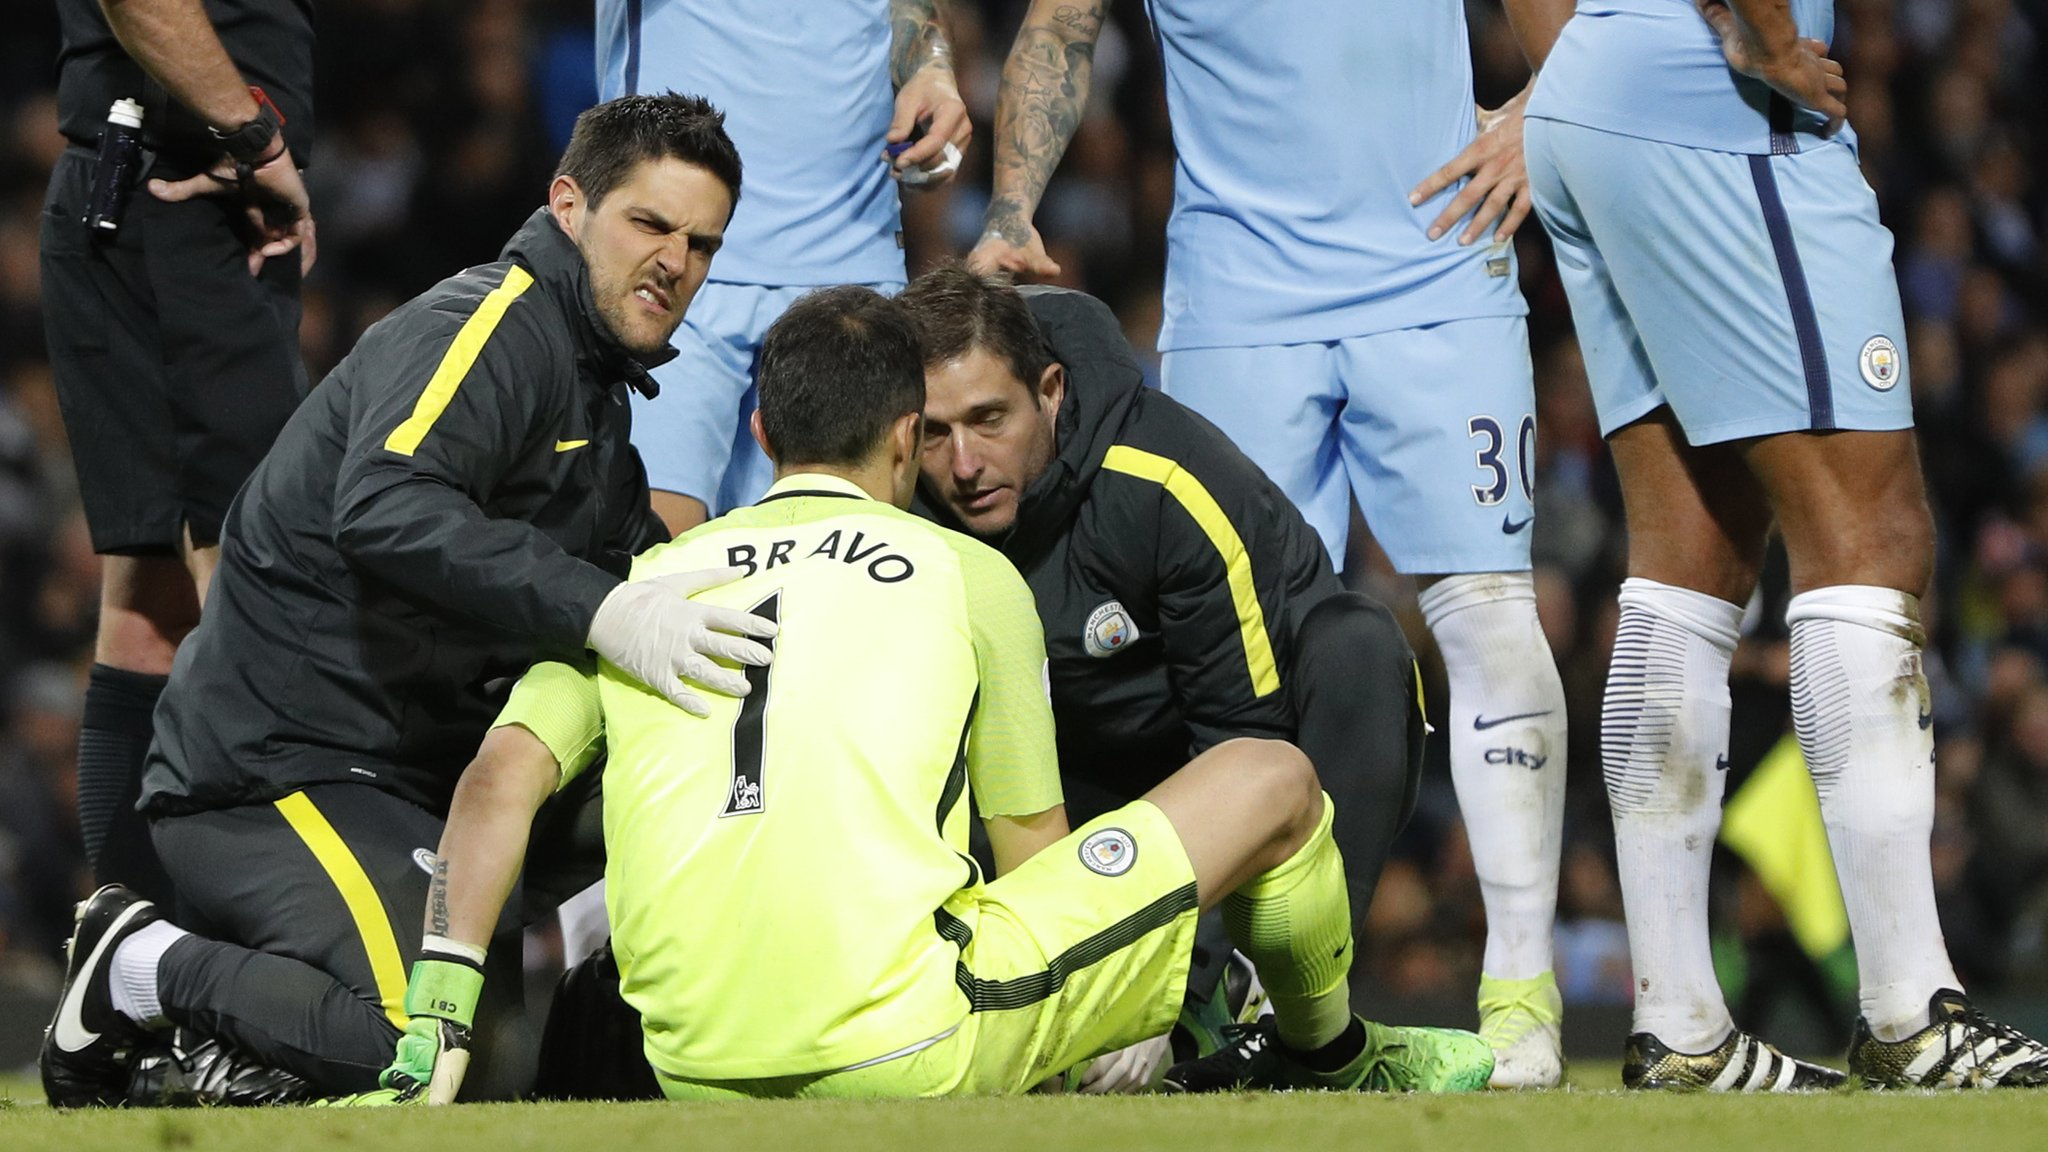 Man City keeper Bravo's season could be over